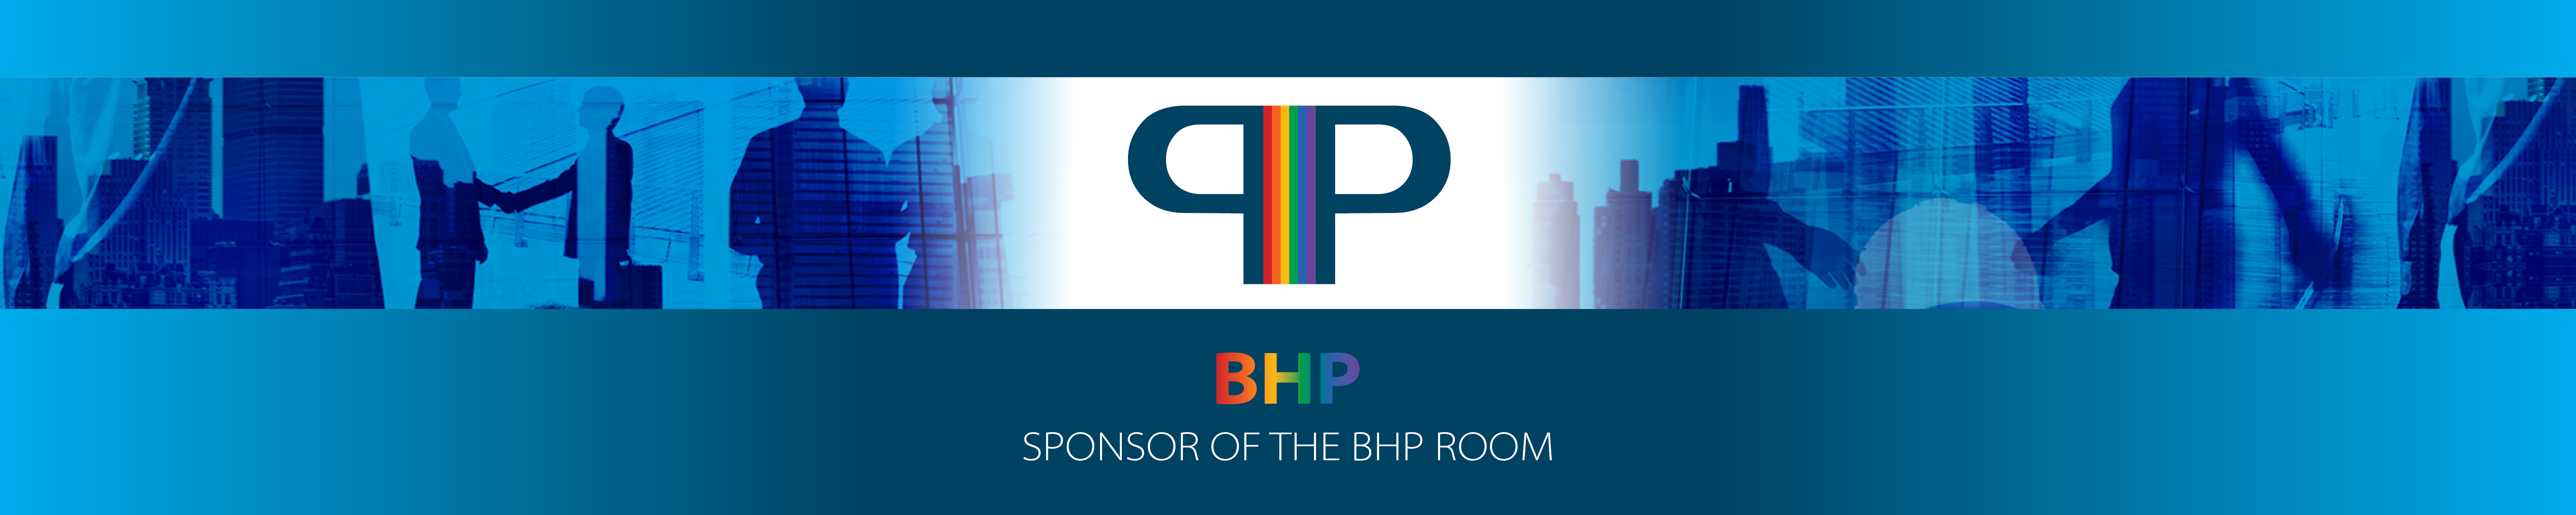 PIP_Conference_BHP_RoomSponsor1